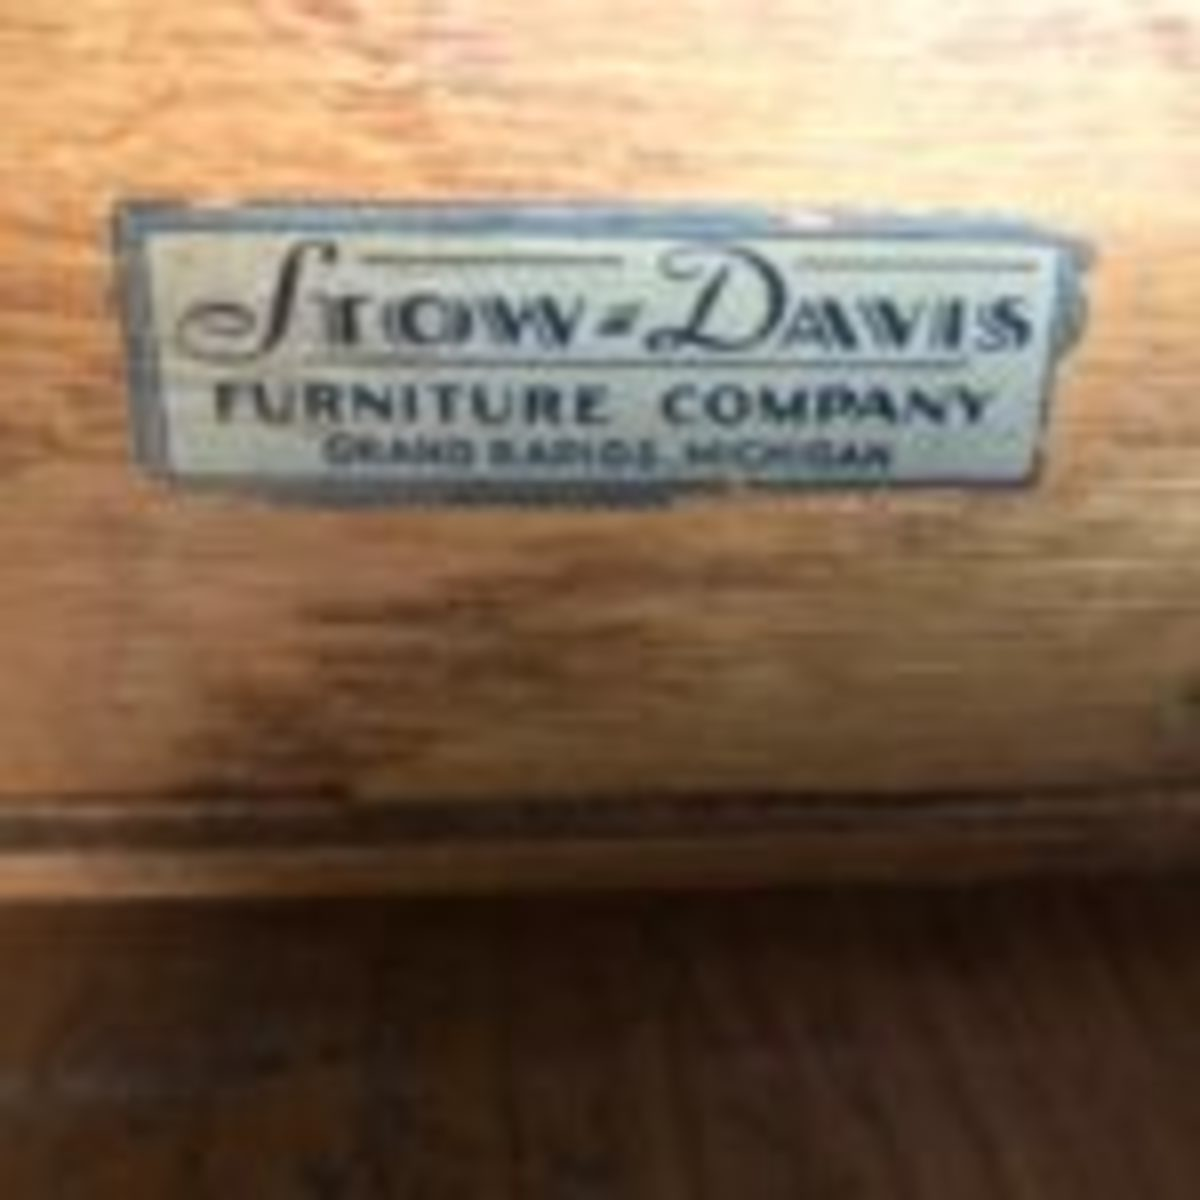 Stow & Davis desk submitted for appraisal